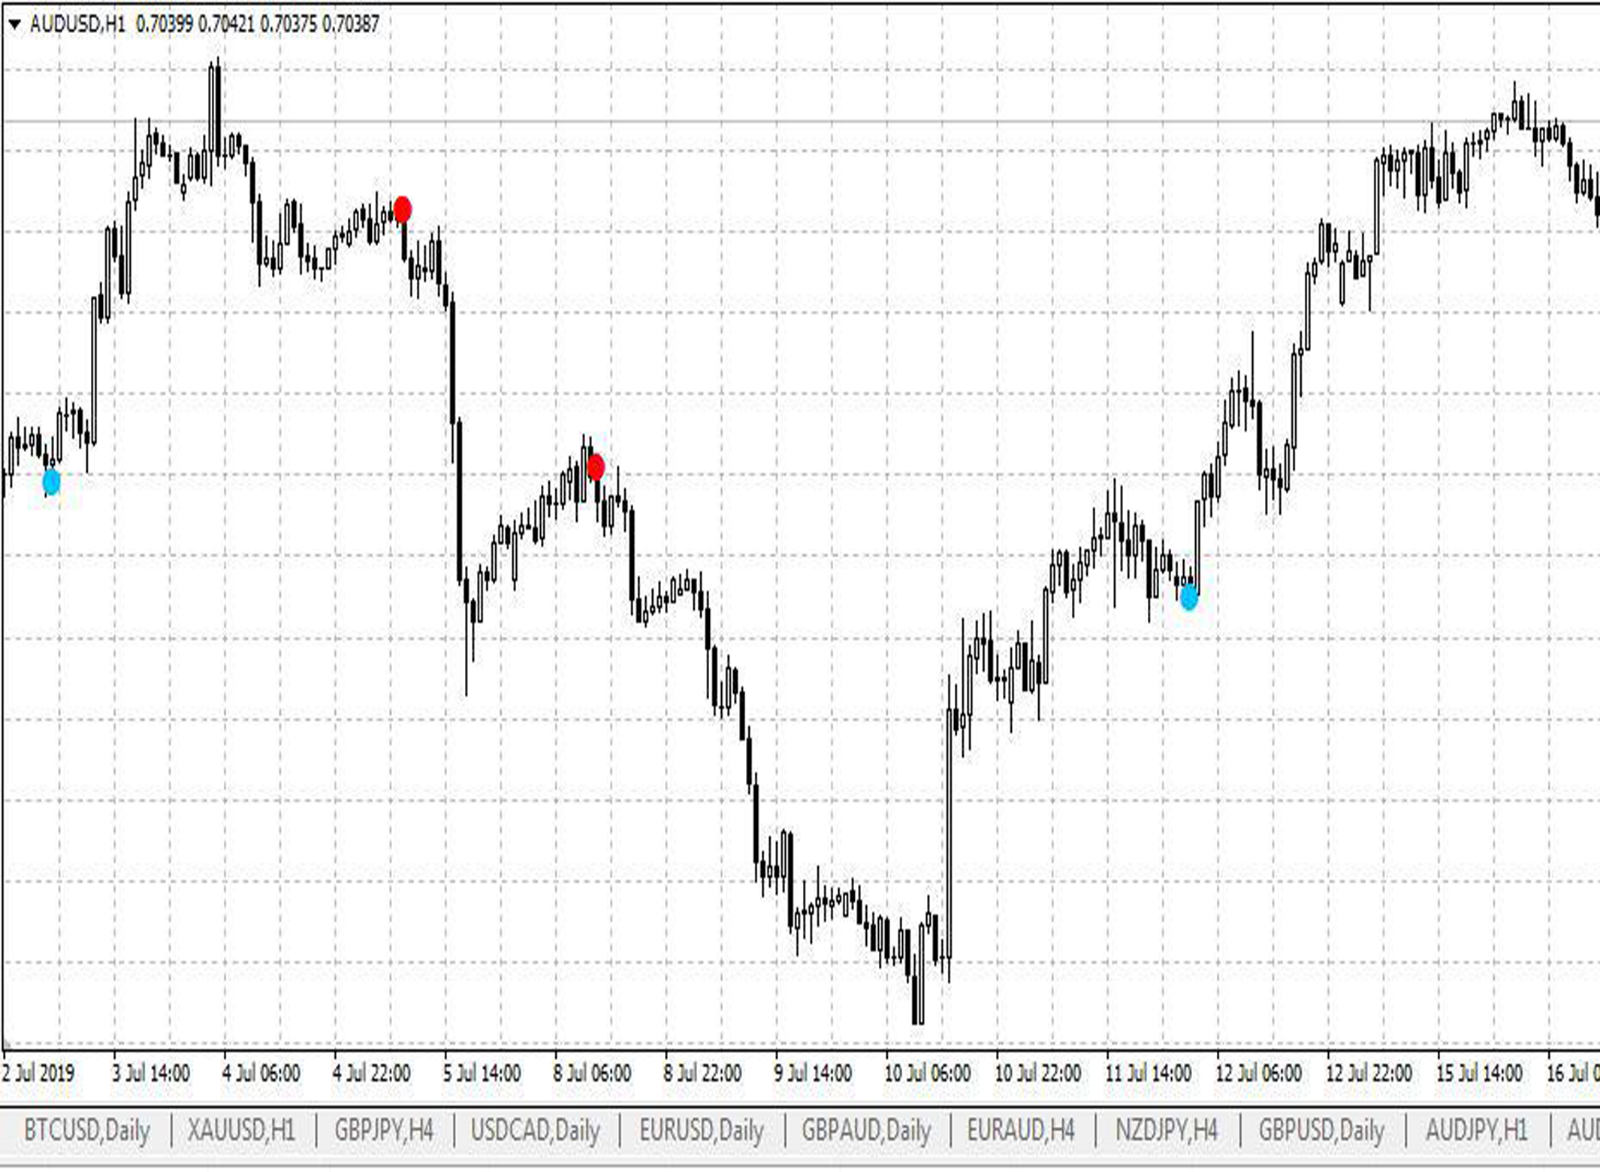 The Best Binary Options/Forex Trading System - Indicator Accurate Signals Profit